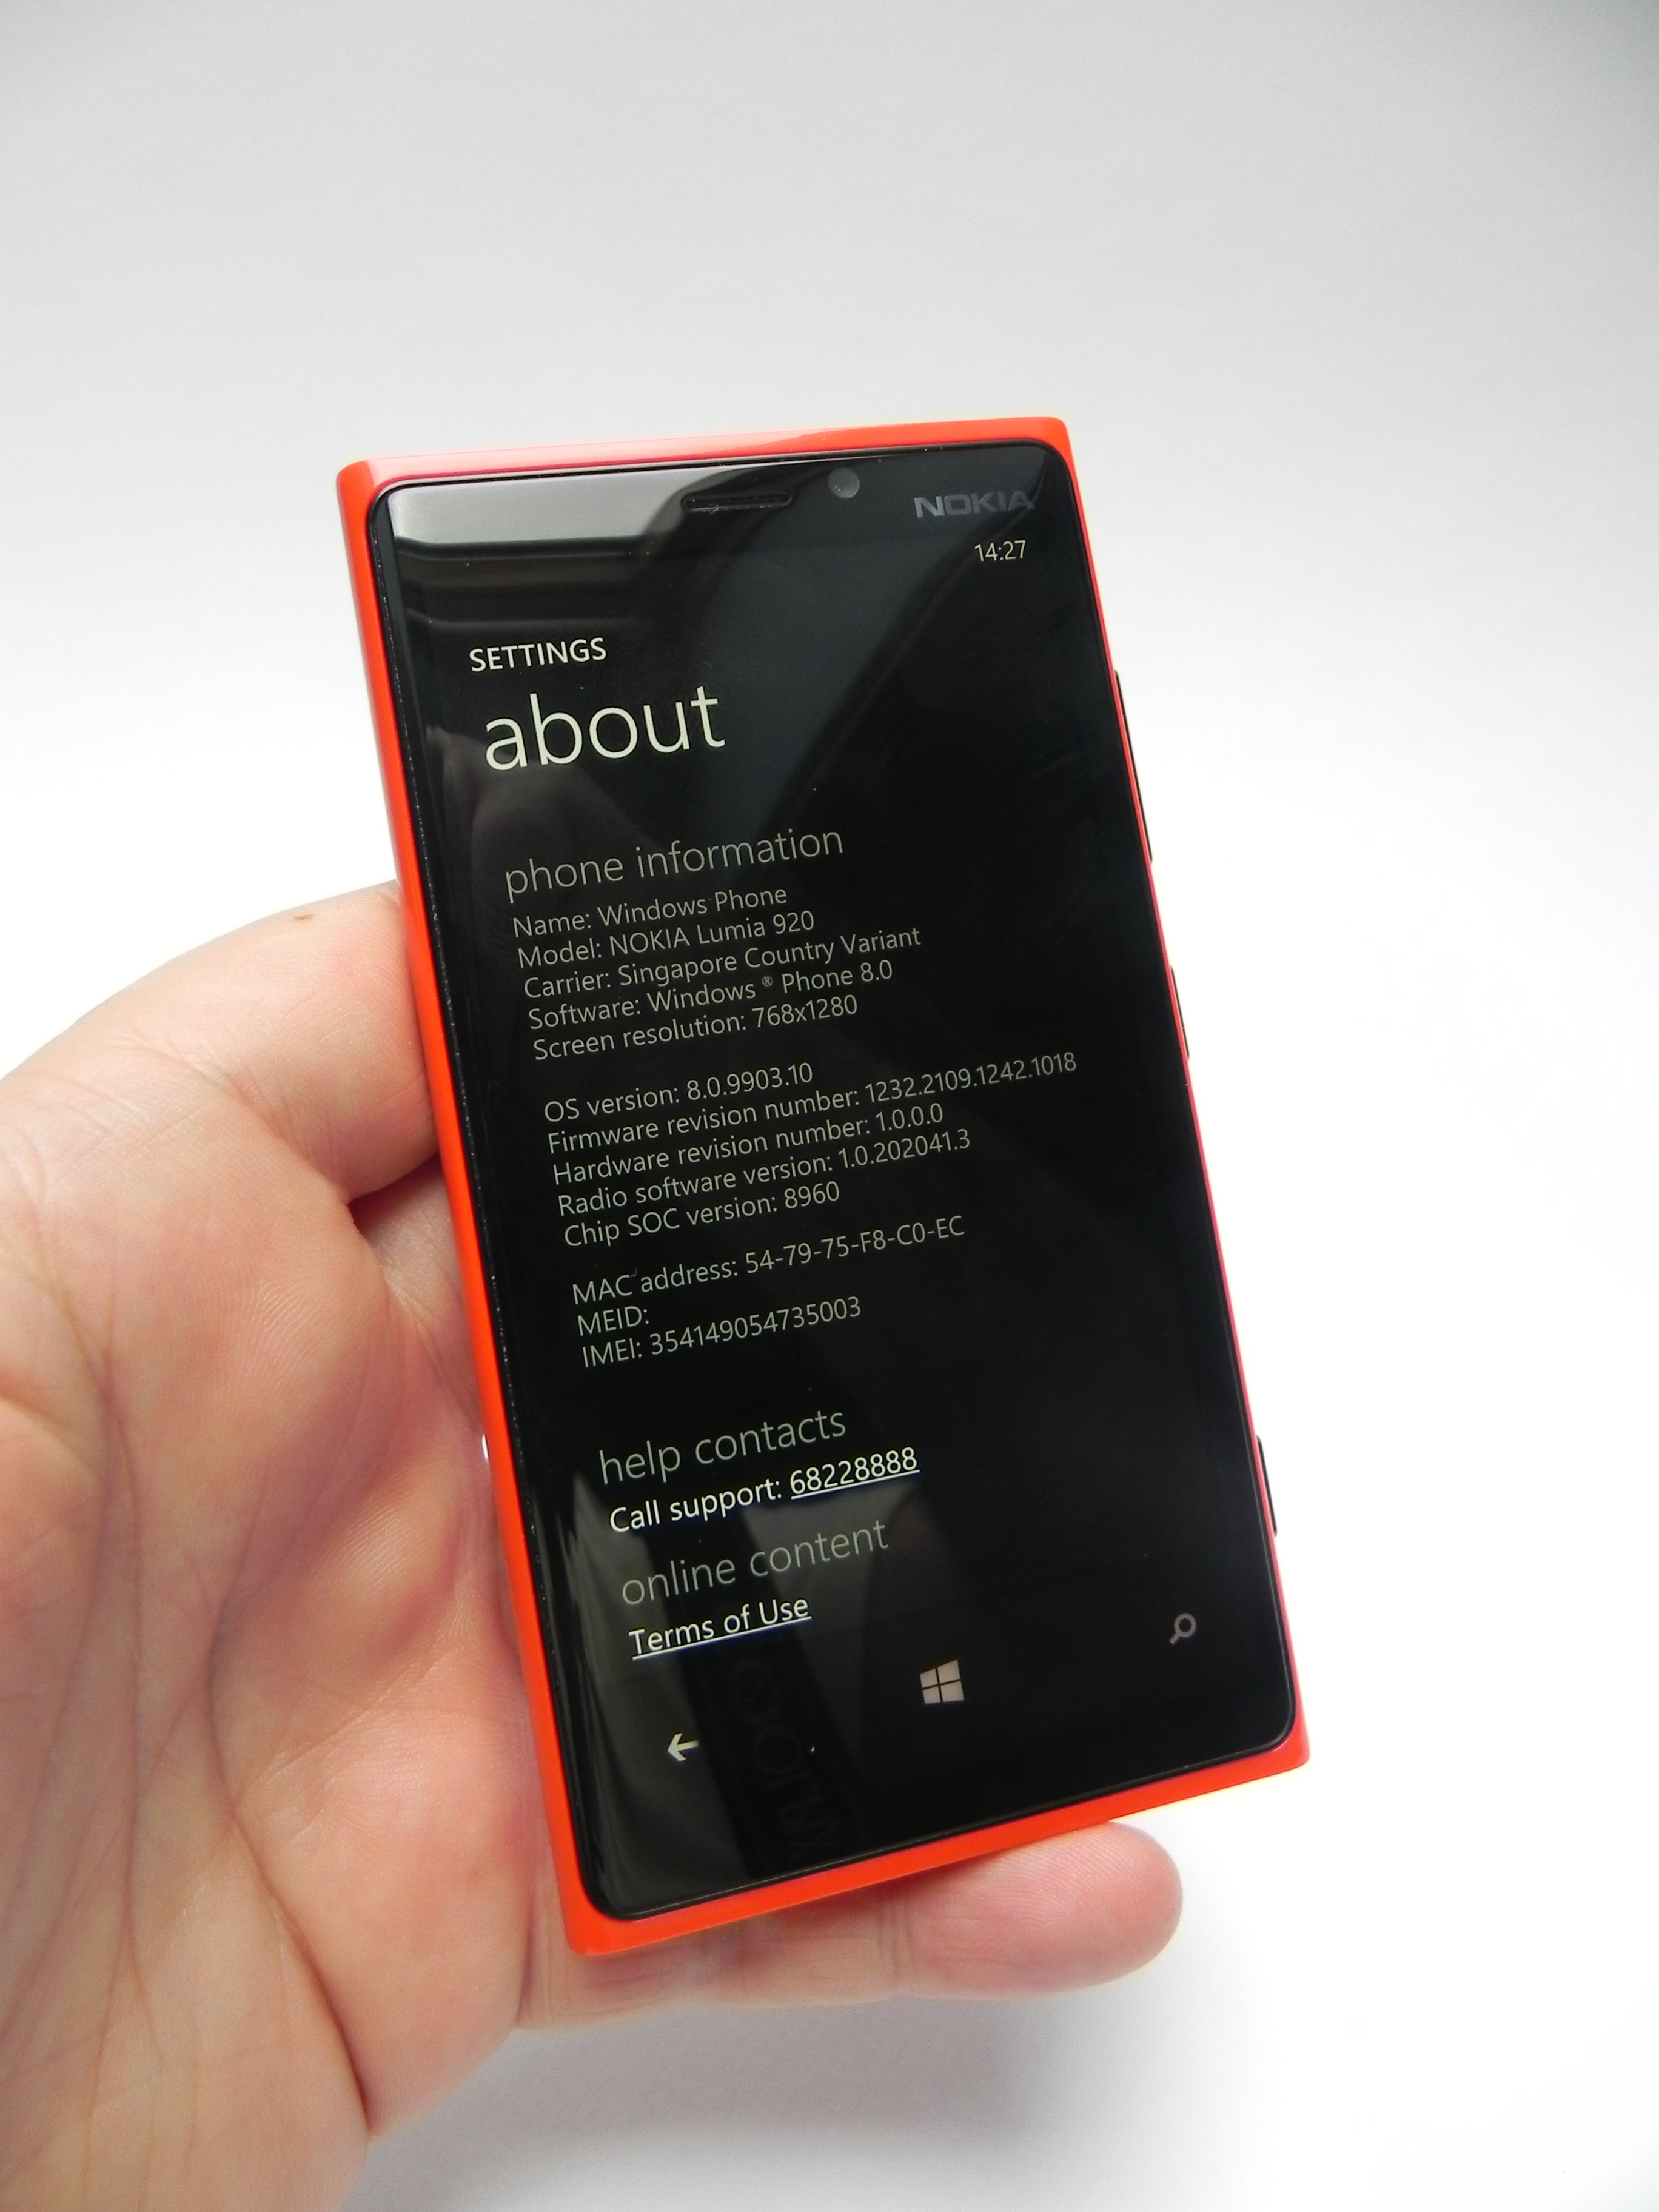 Nokia finally unveils not one but two windows phones the lumia 800 - Try Watching This Video On Www Youtube Com Or Enable Javascript If It Is Disabled In Your Browser